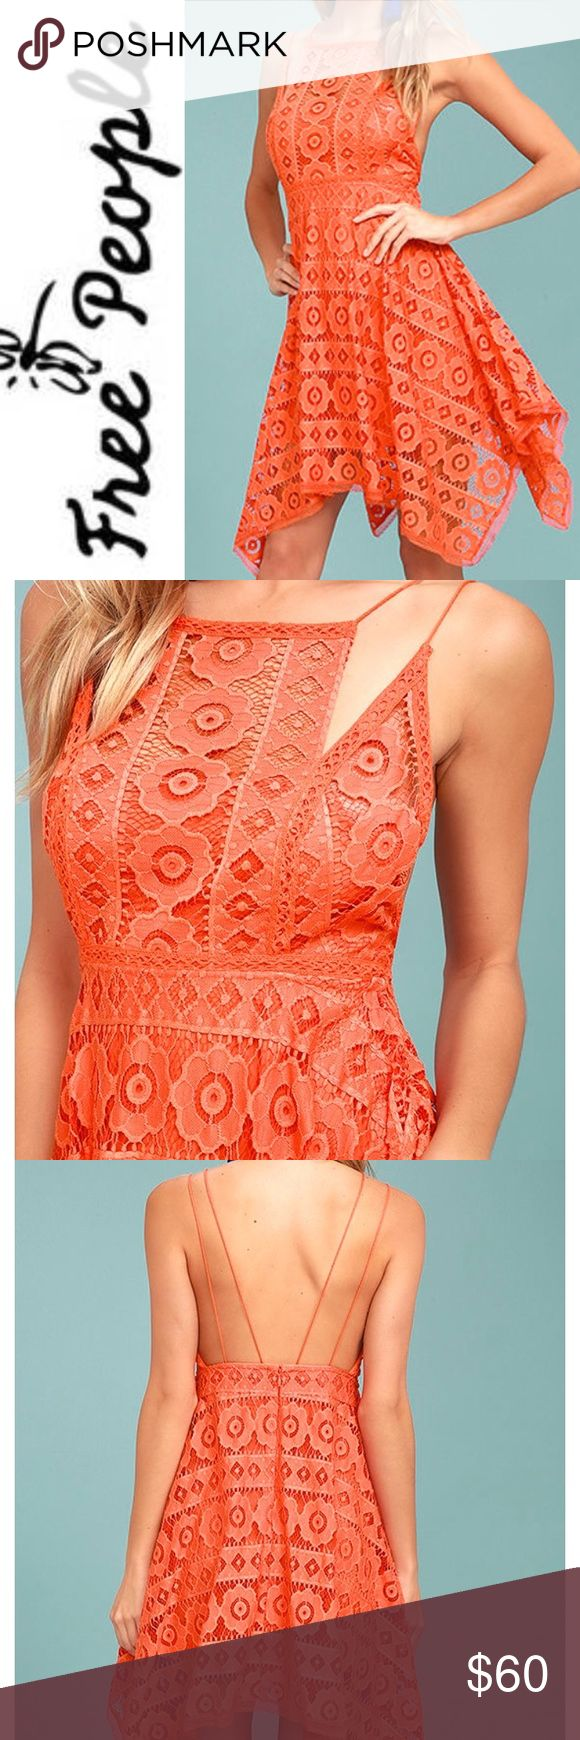 NWT Free People Just Like Honey Orange Dress Brand new with the tags perfect condition adorable on hugs in all the right places, orange salmon color Free People Dresses Midi